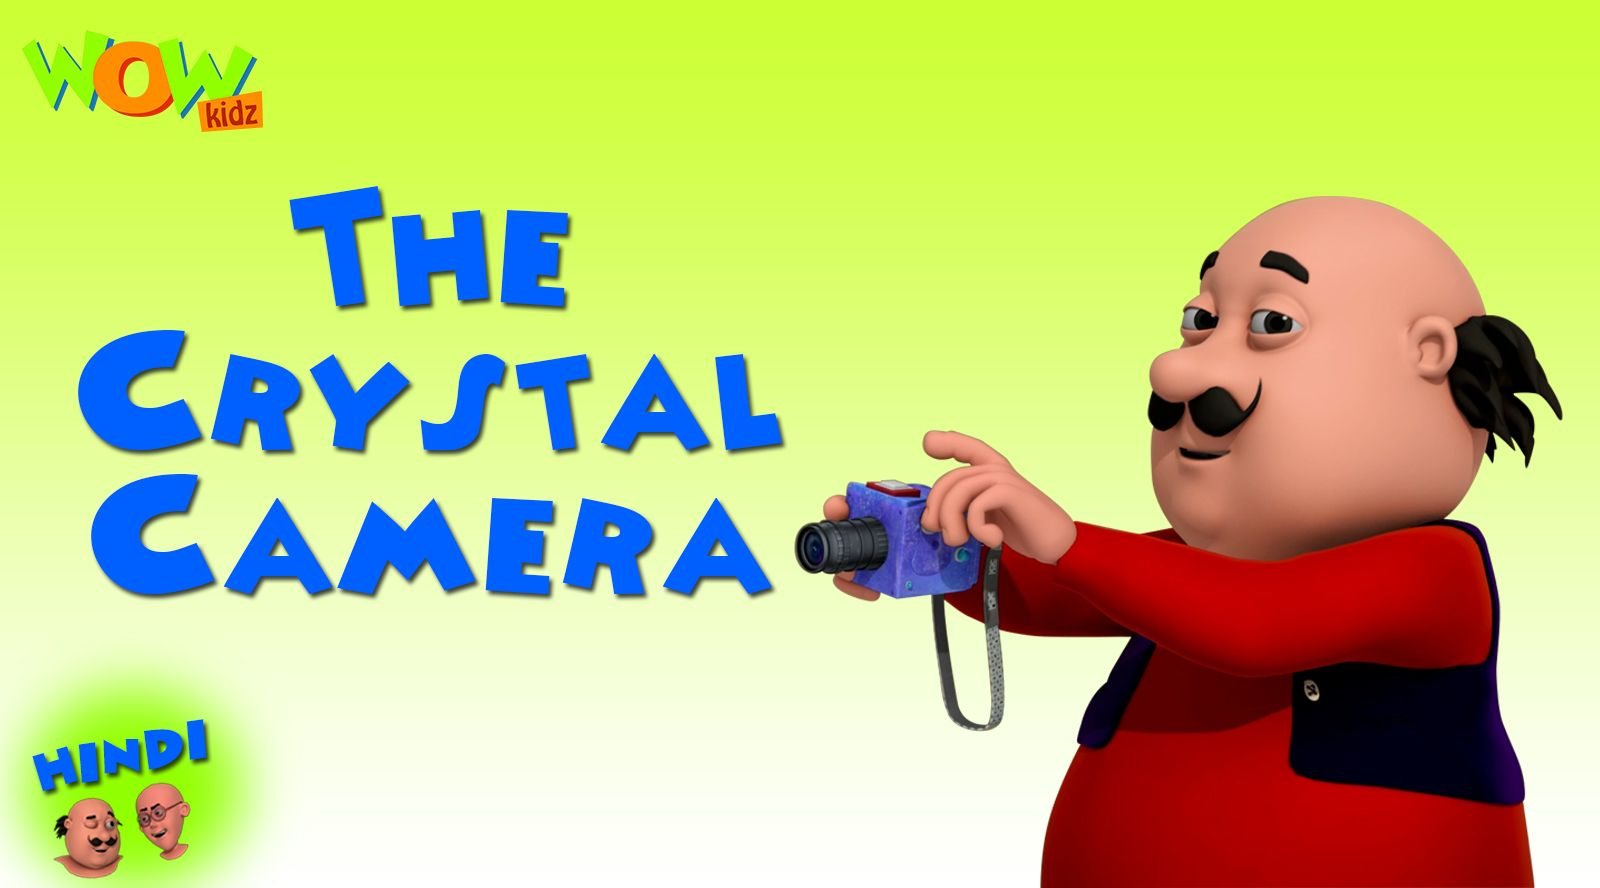 Dr Jhatka Has Invented A Camera Which Can Turn Anyone Into Crystal